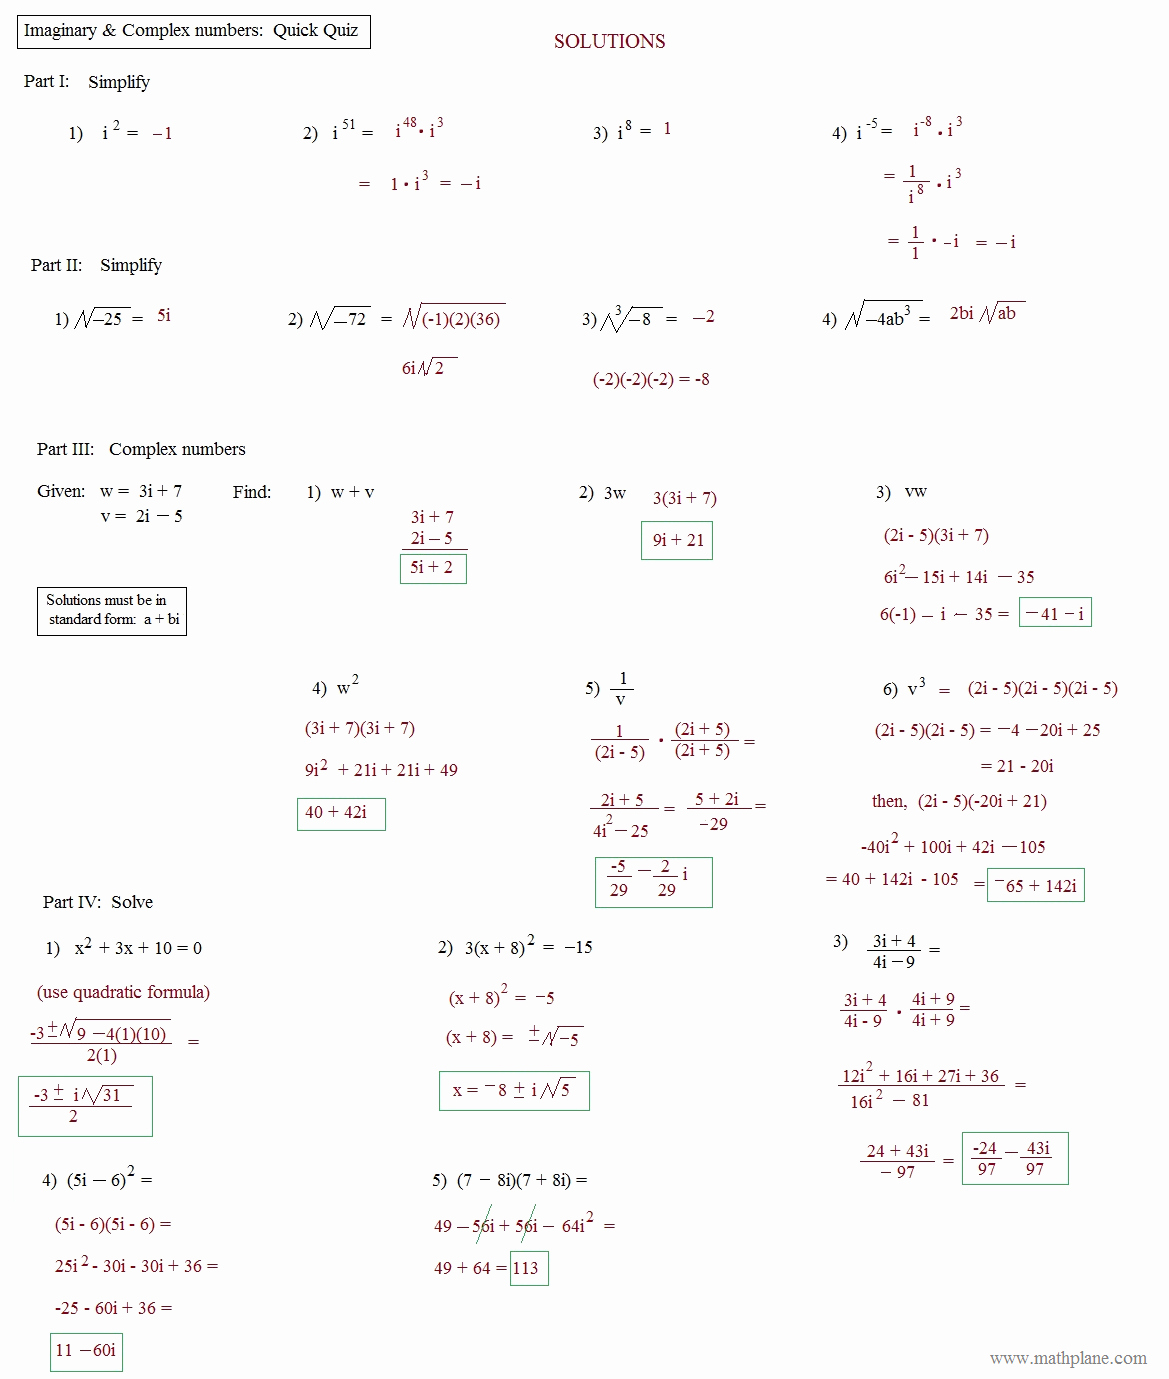 Simplifying Complex Numbers Worksheet New Math Plane Imaginary and Plex Numbers